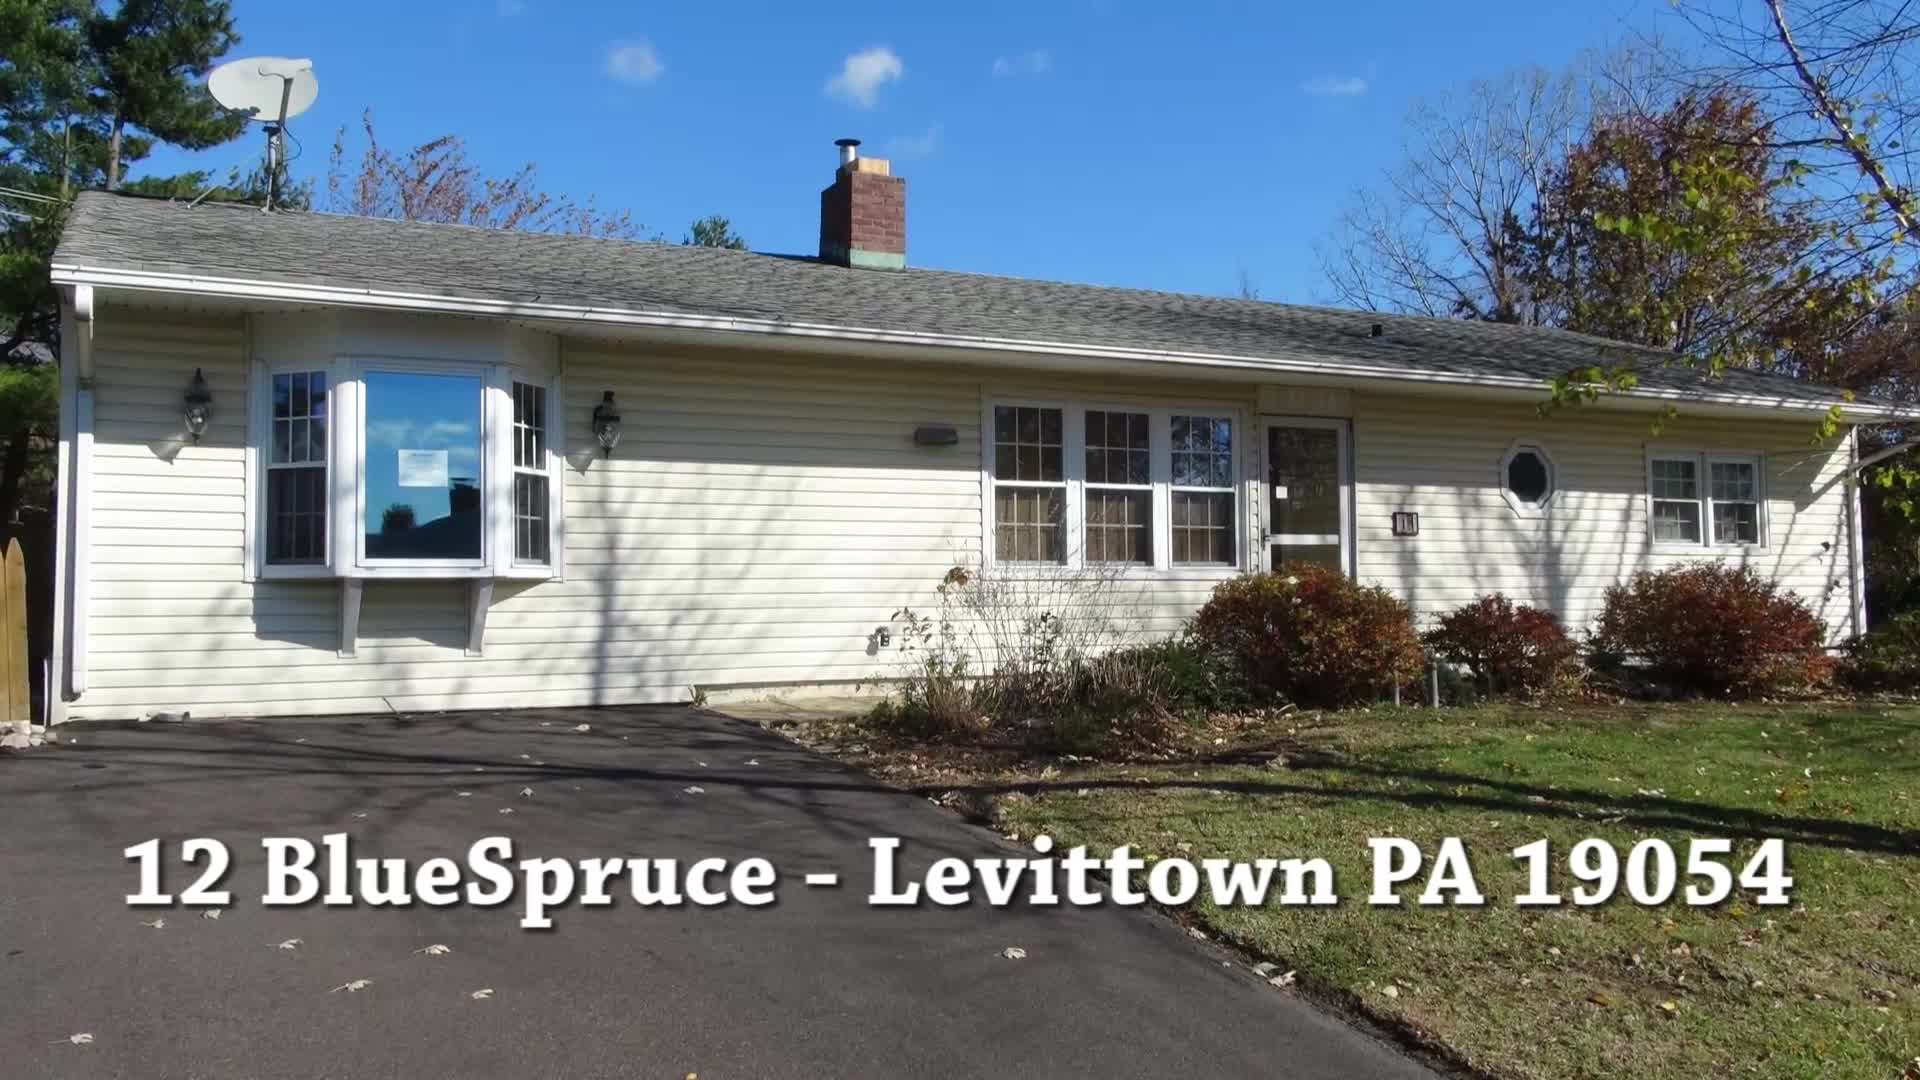 12 BlueSpruce Levittown PA 19054 – Foreclosure Properties Levittown PA 19054